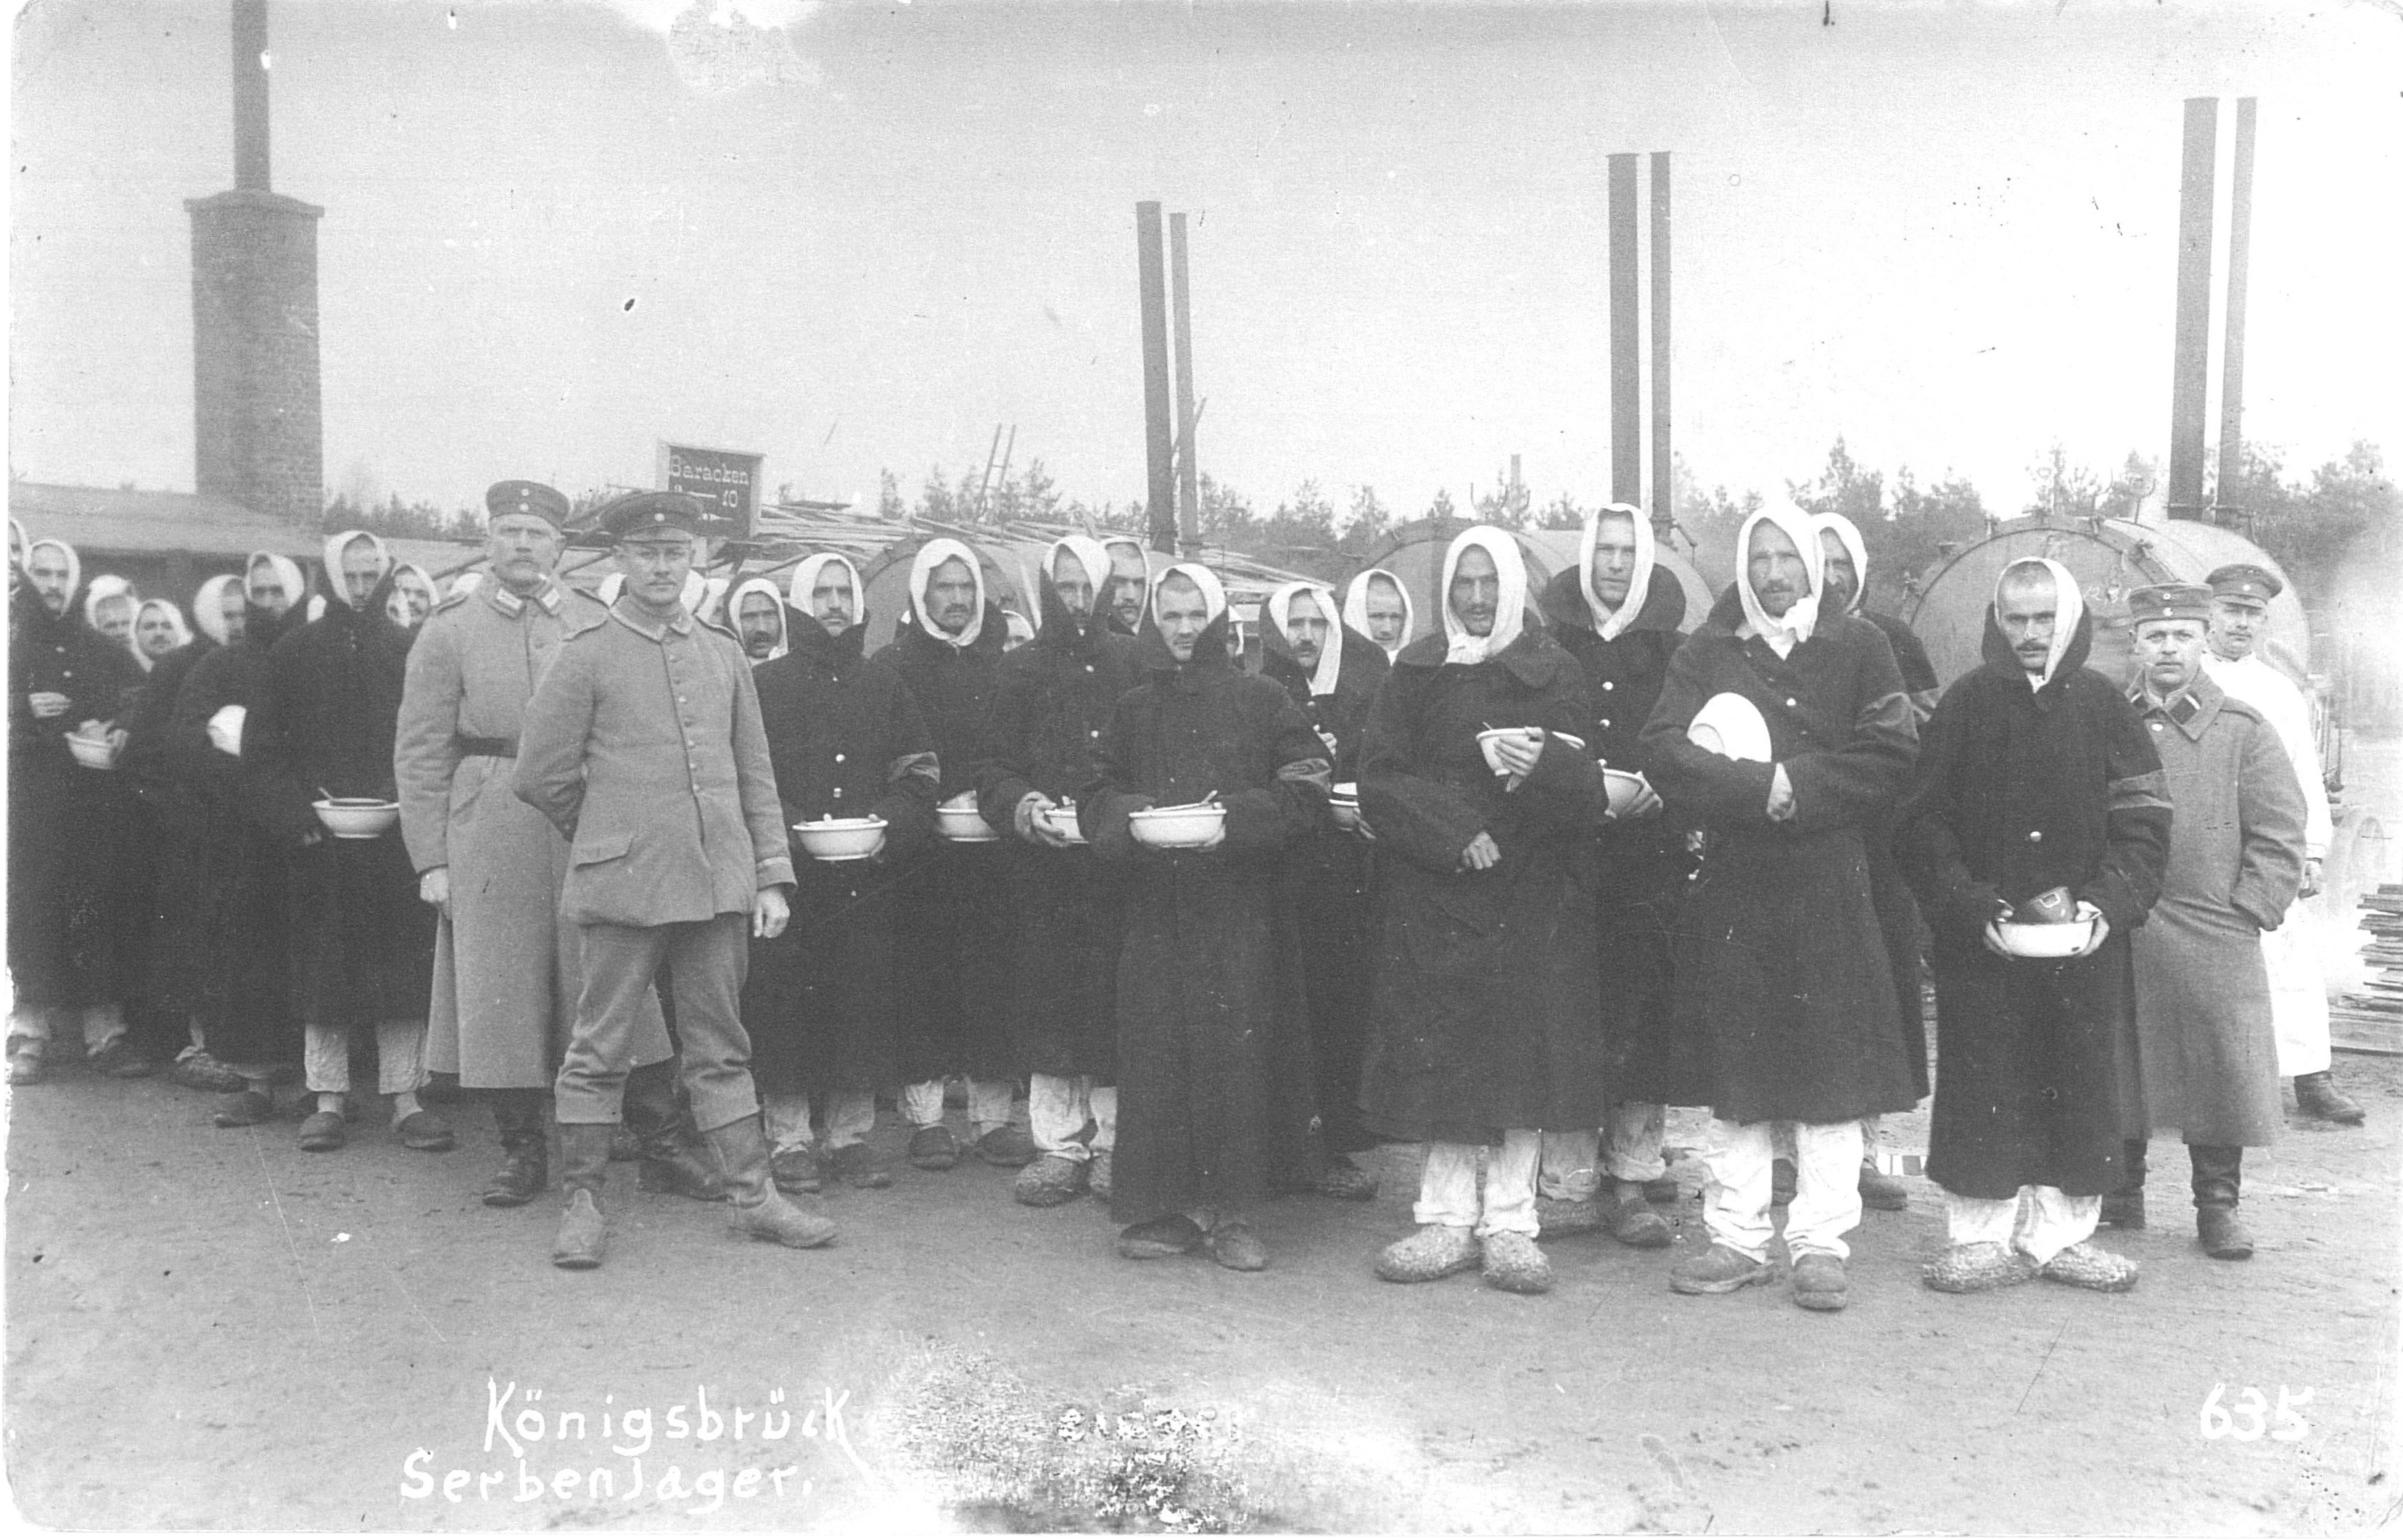 Serbian prisoners of war at Königsbrück before the distribution of rations